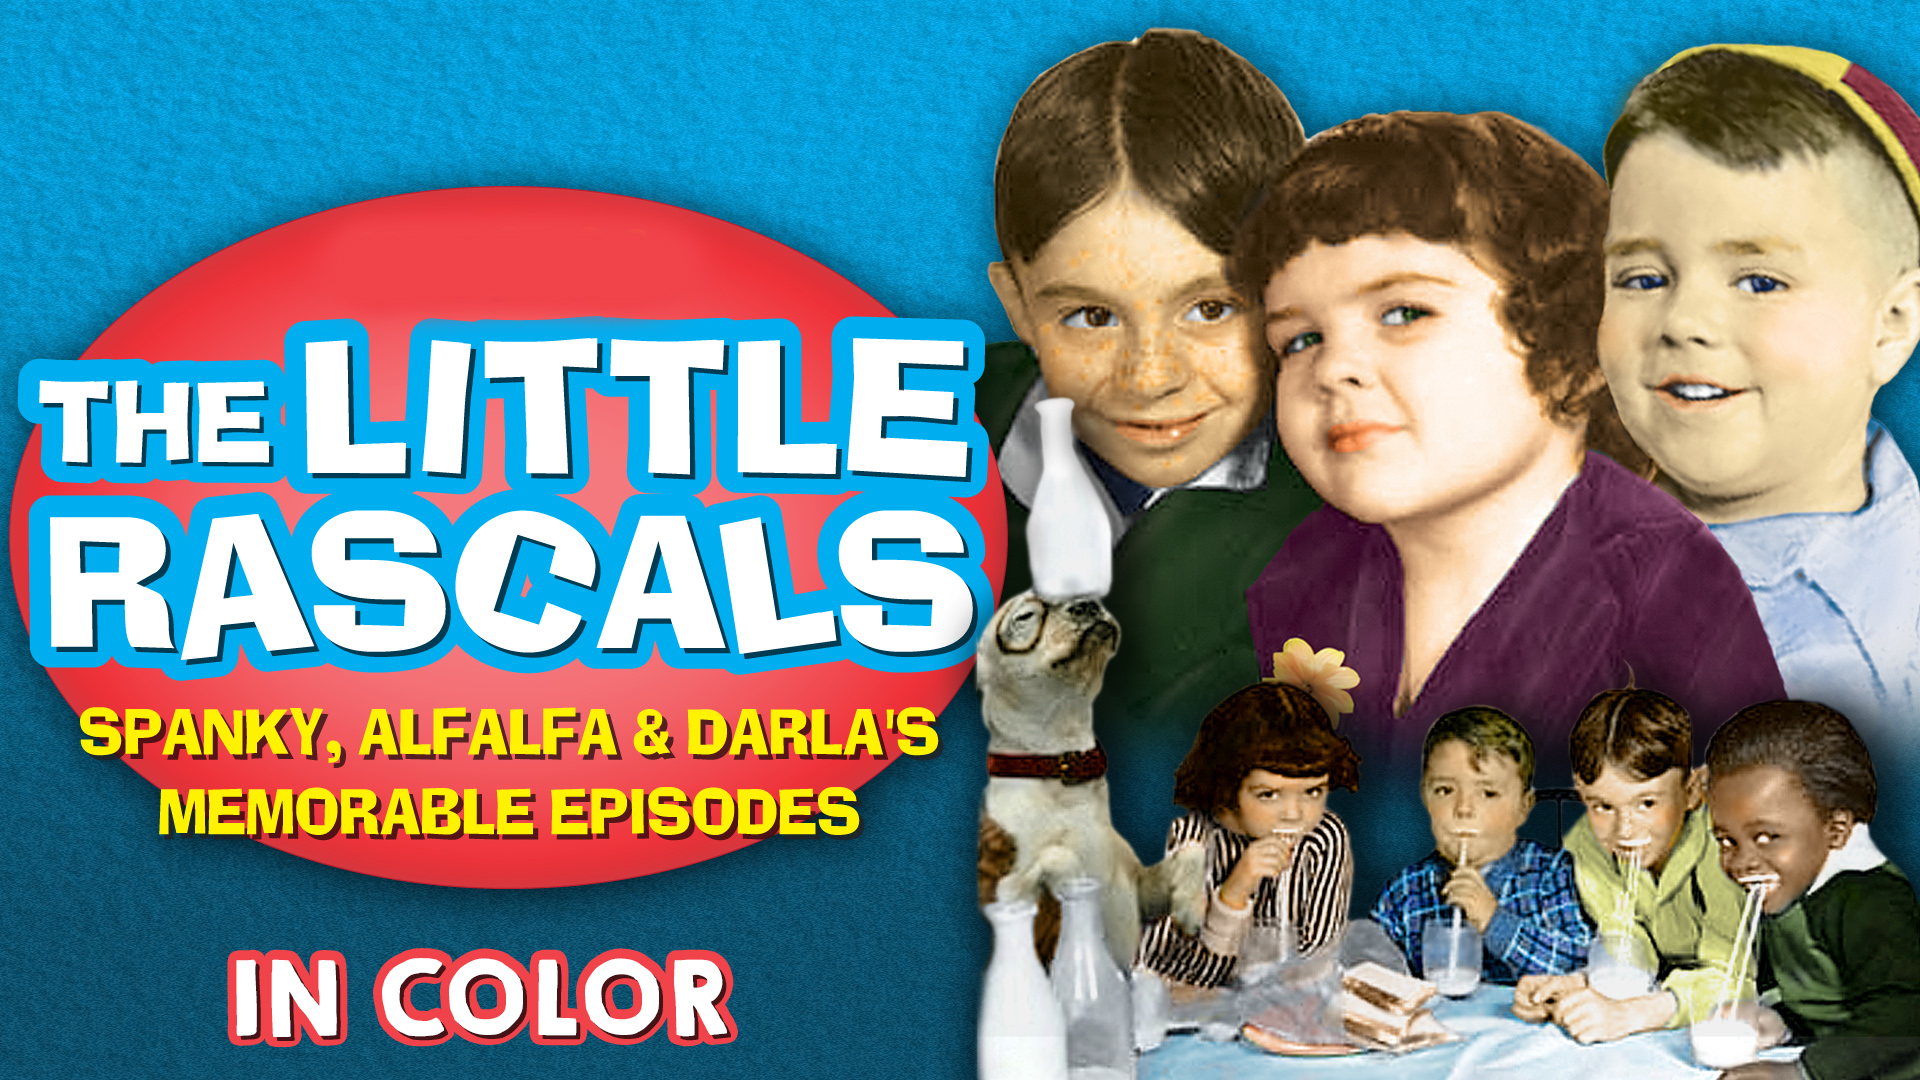 The Little Rascals Spanky, Alfalfa, & Darla's Memorable Episodes in Color